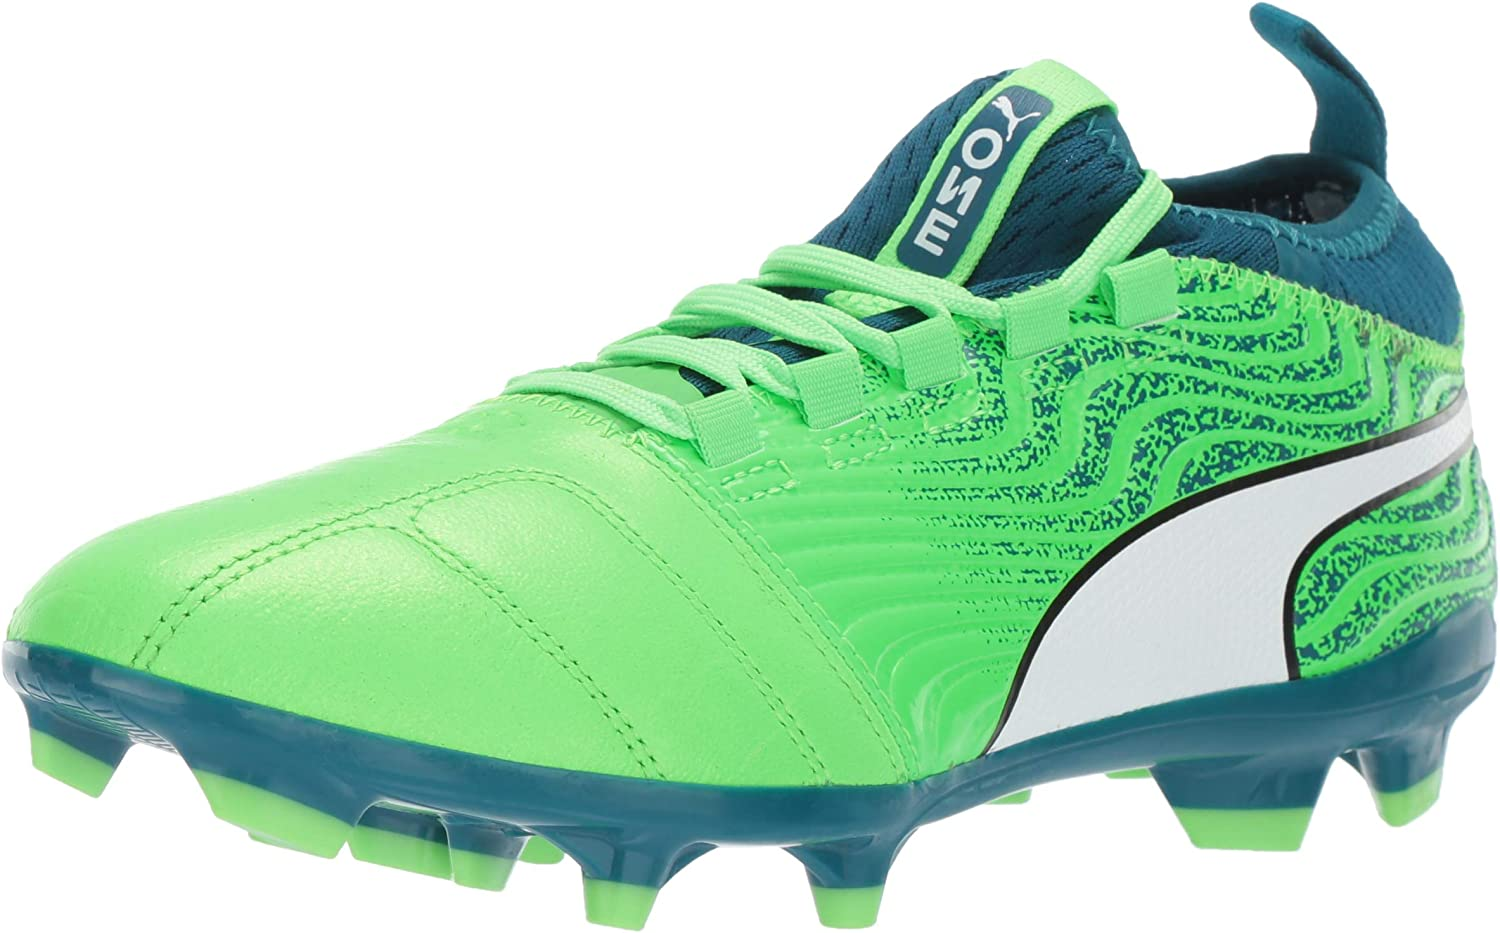 PUMA Unisex-Adult Limited time cheap sale ONE 18.3 Soccer Shoe Branded goods FG